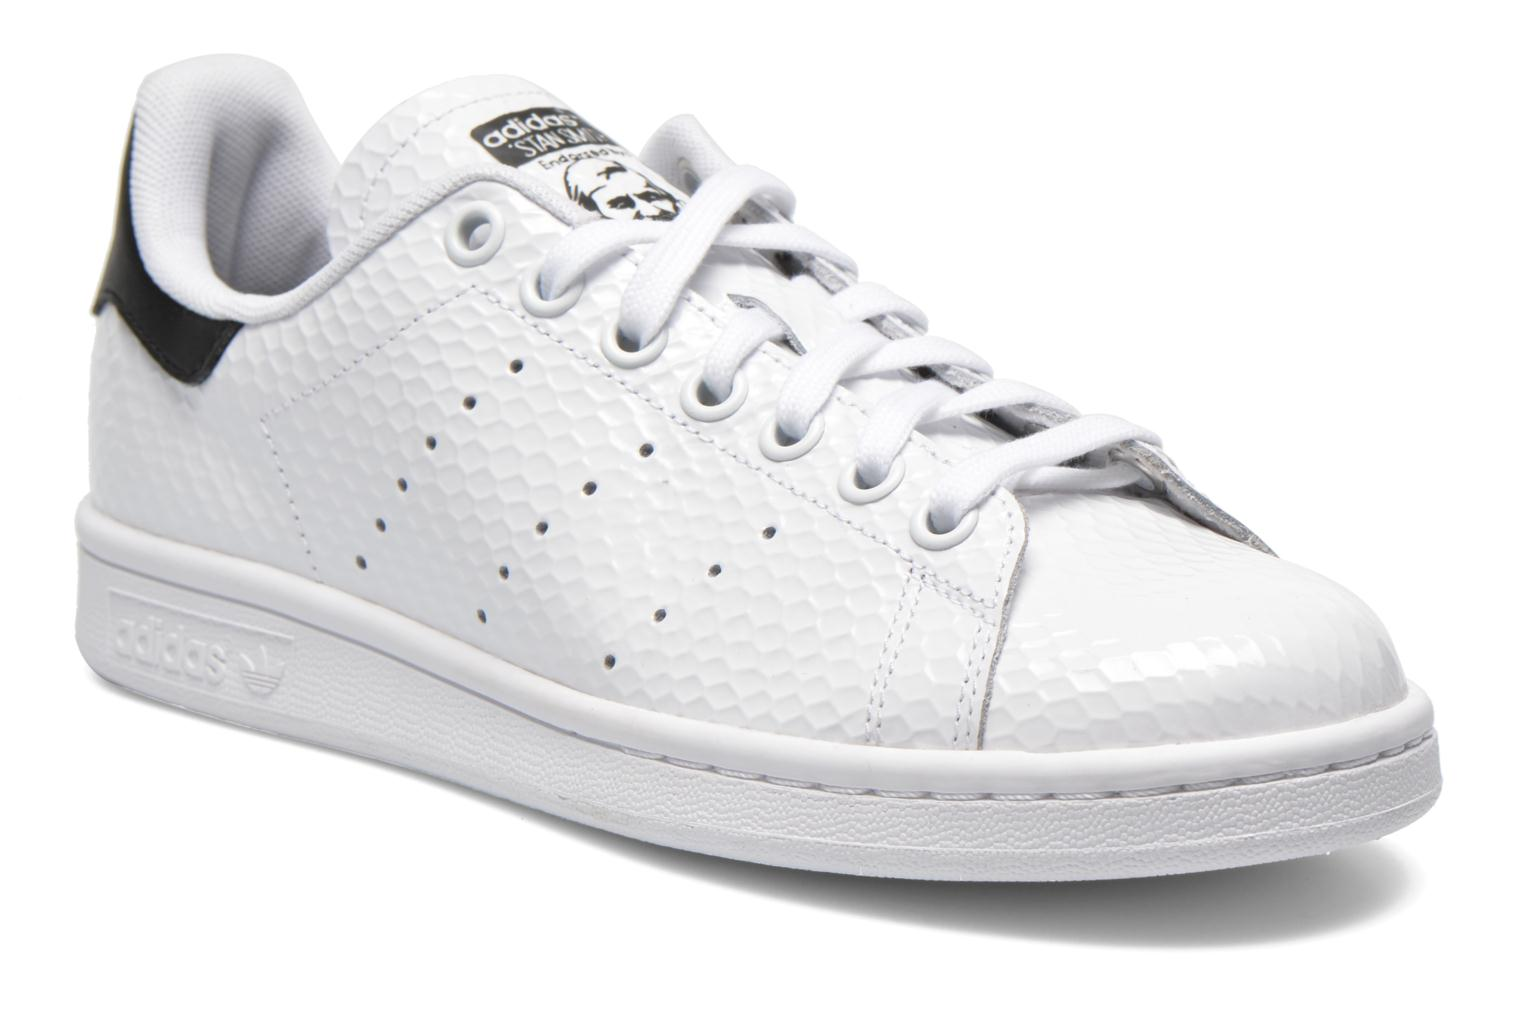 Adidas Stan Smith Effet Croco. '